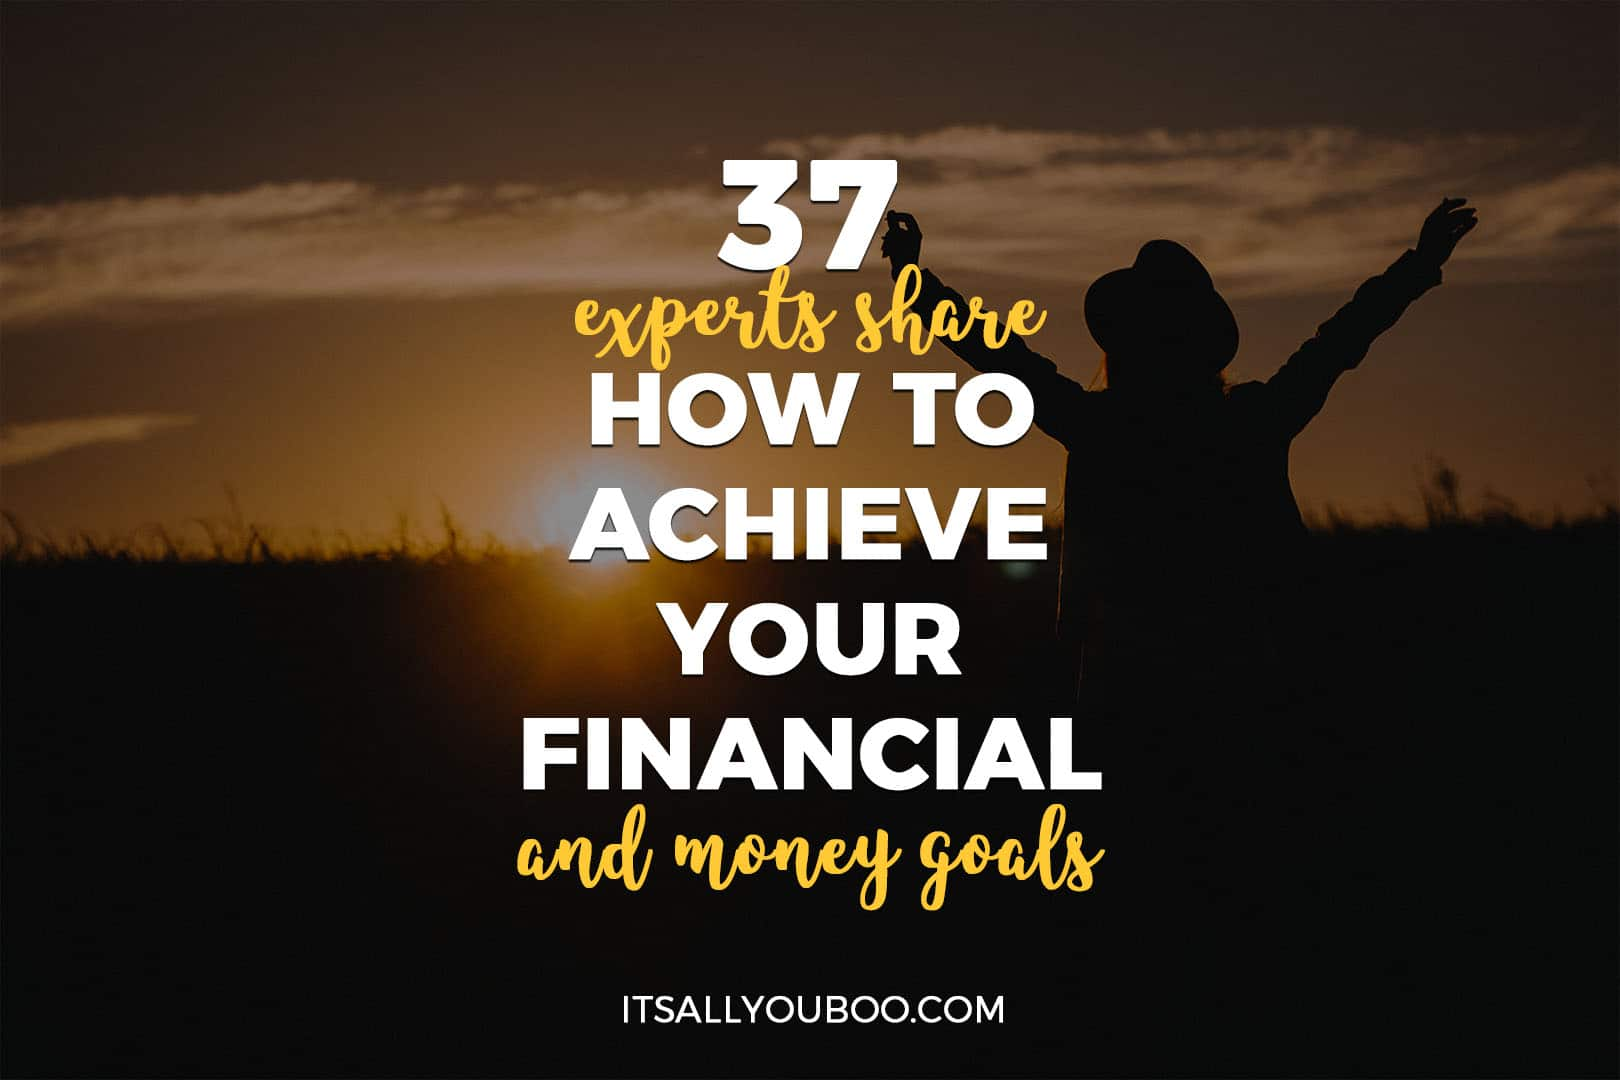 37 Experts Share How to Achieve Your Financial and Money Goals